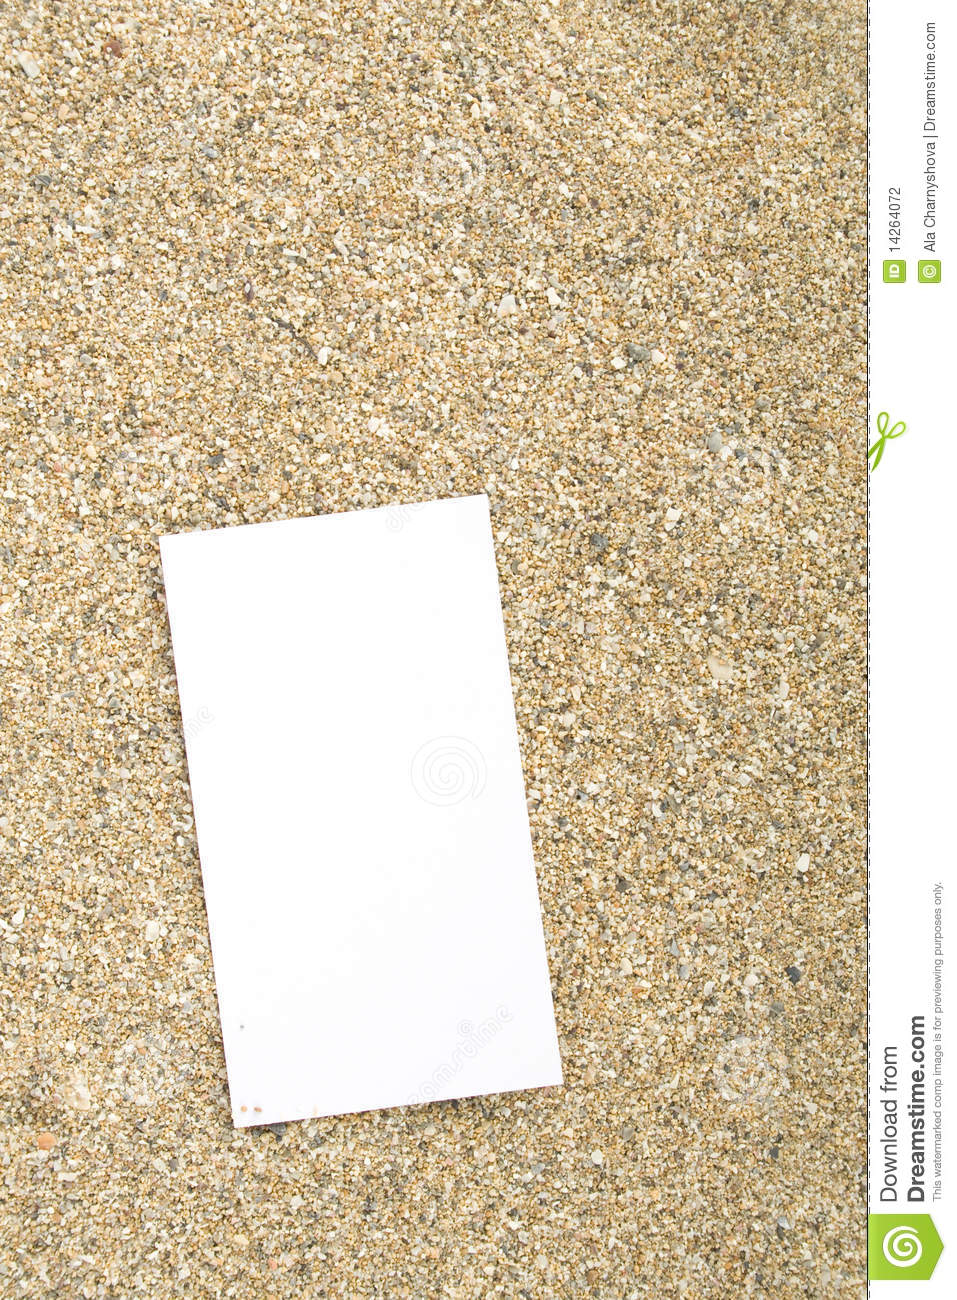 Businesscard on sand